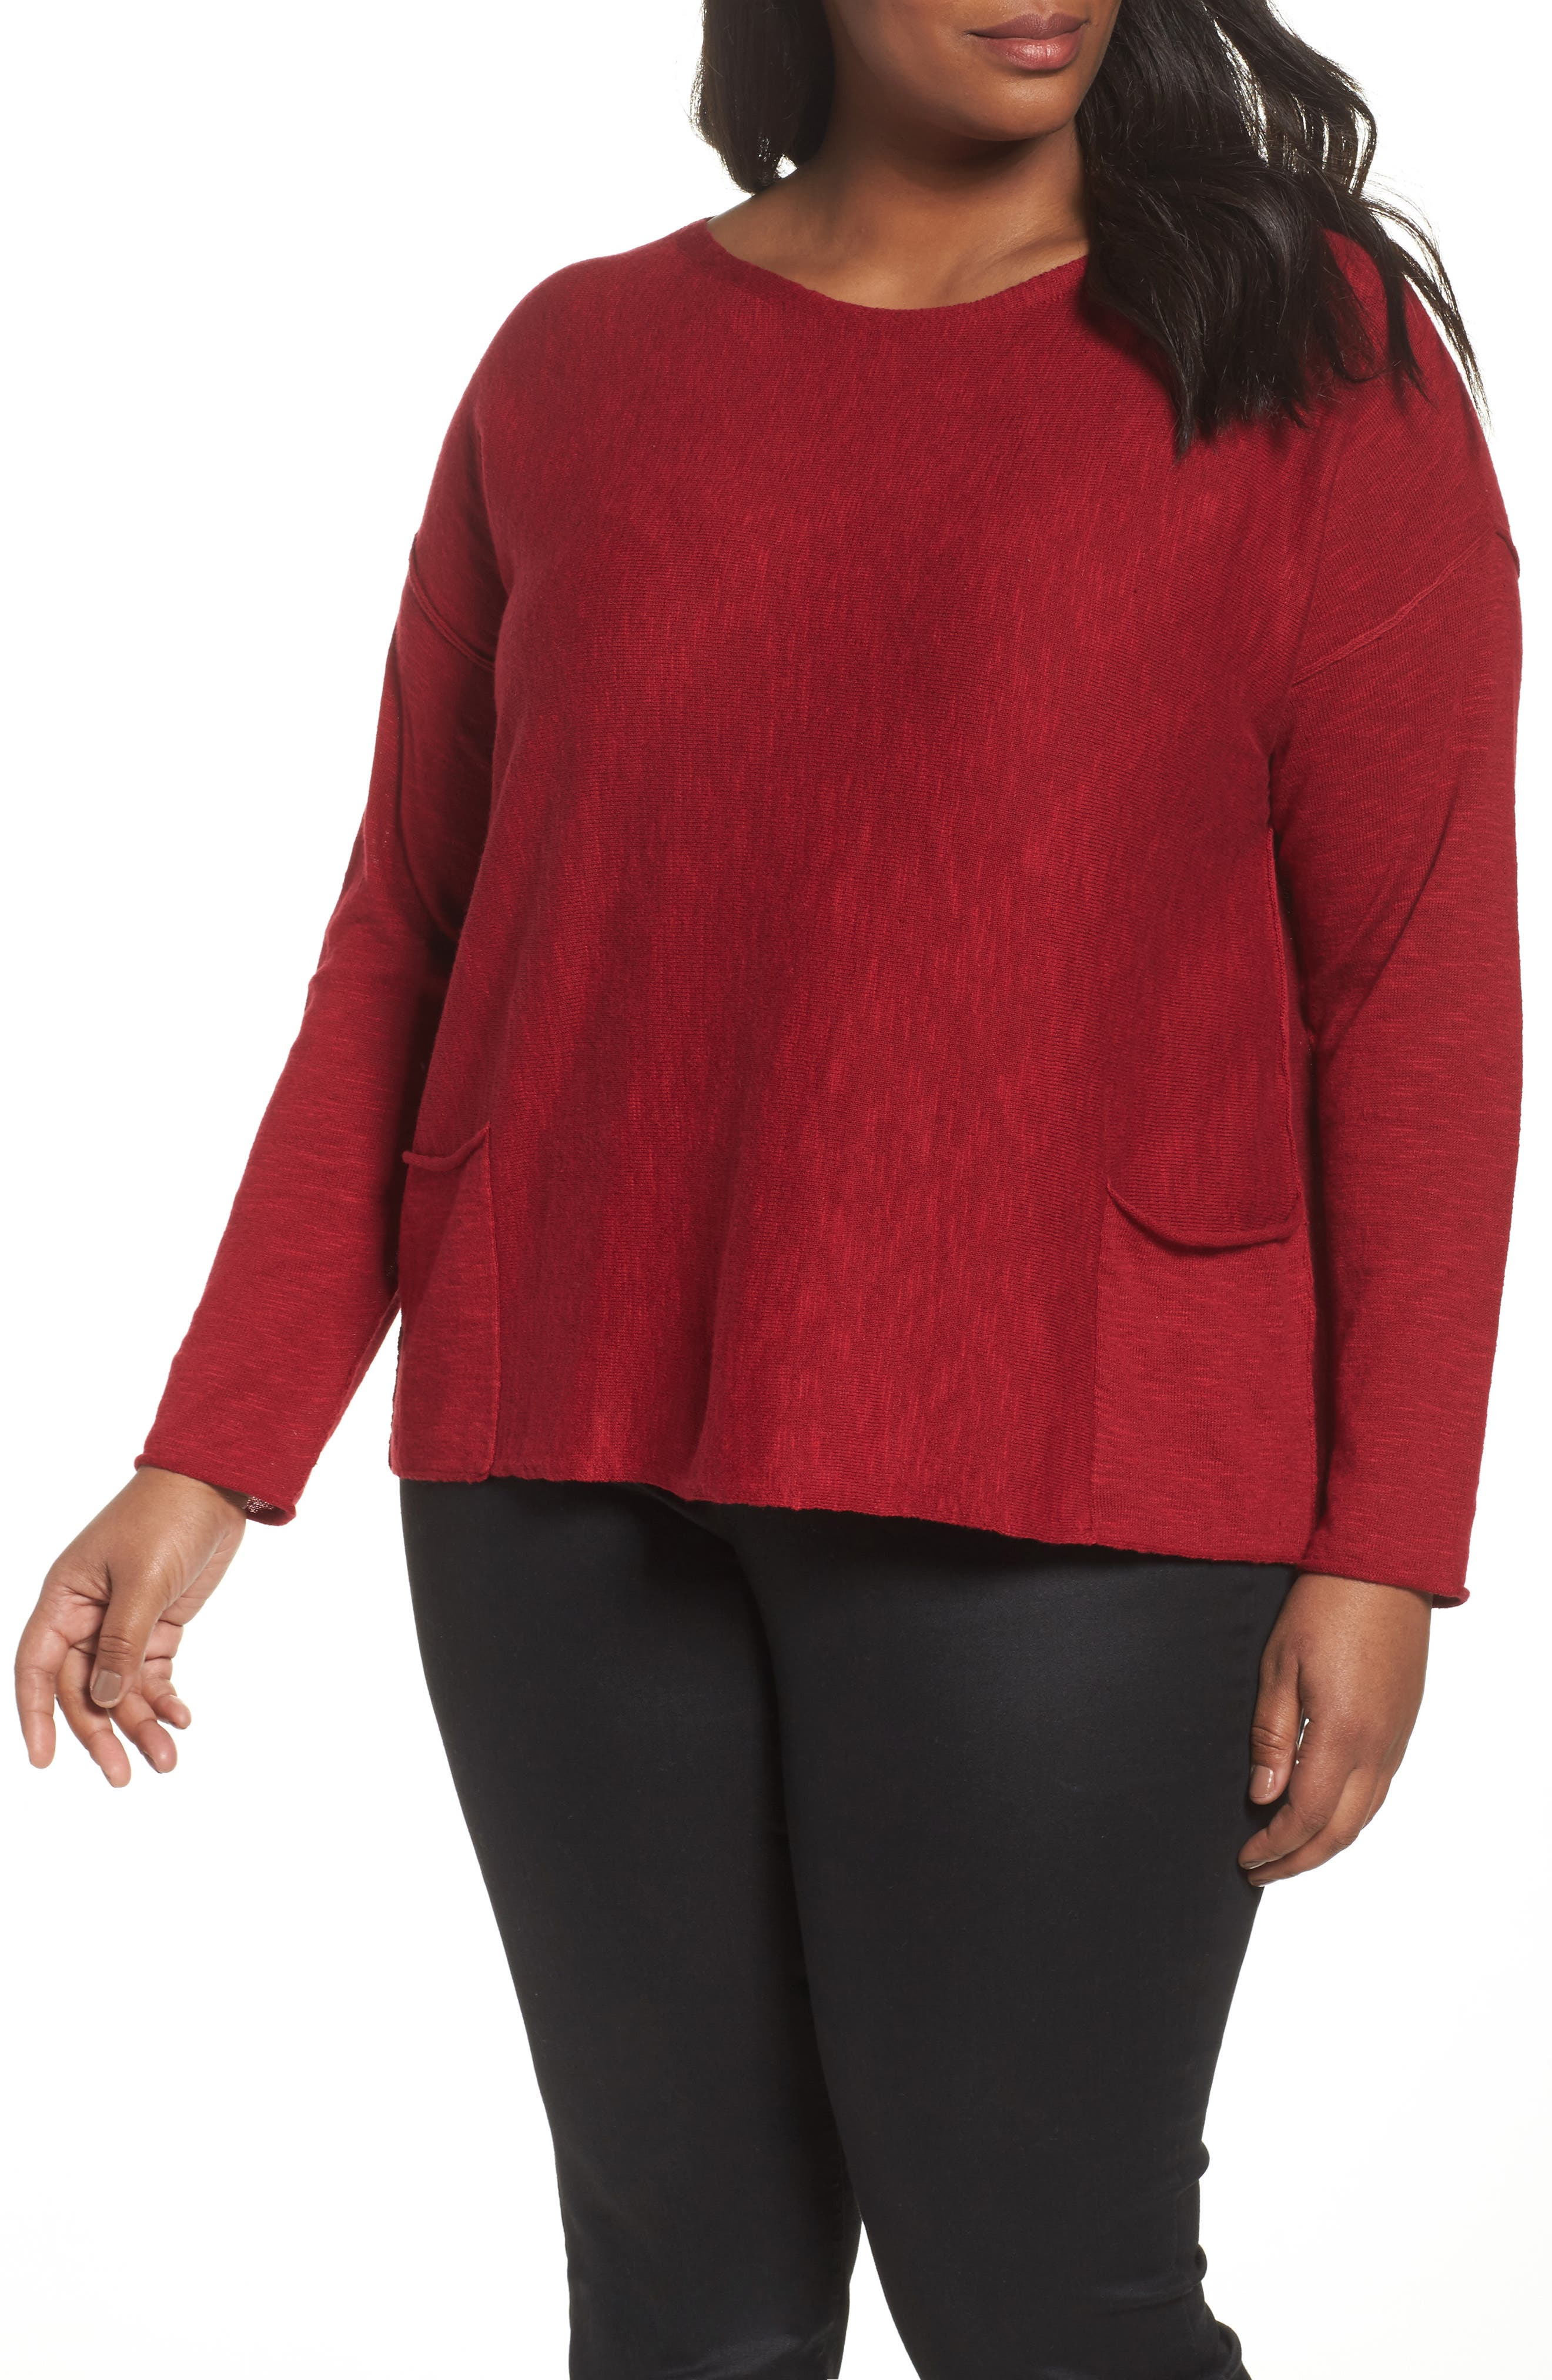 Main Image - Eileen Fisher Organic Linen & Cotton Sweater (Plus Size)